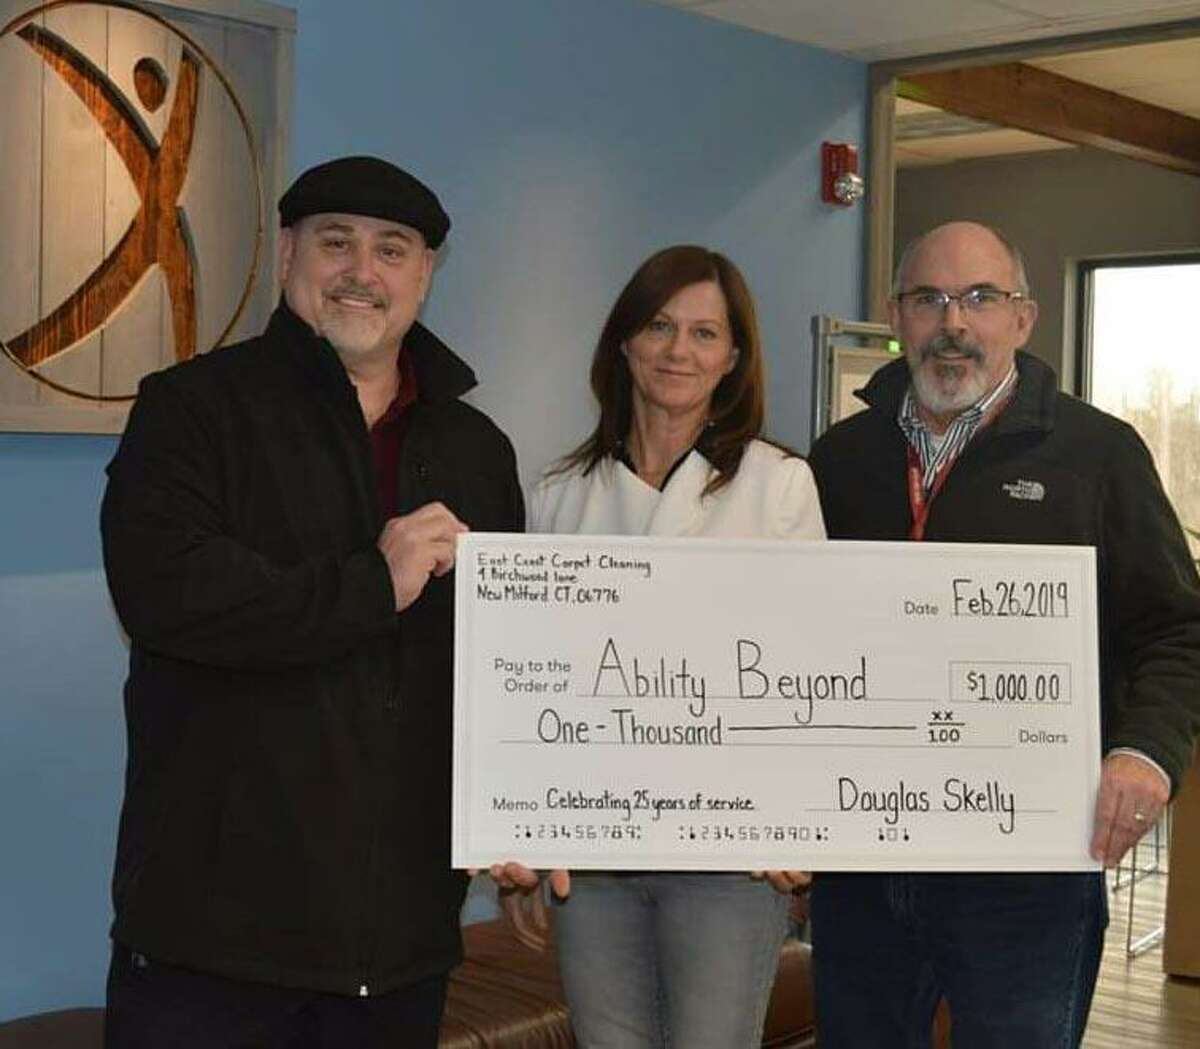 Doug Skelly, left, owner of East Coast Carpet and Upholstery Cleaning in New Milford recently presented a $1,000 donation to Ability Beyond.